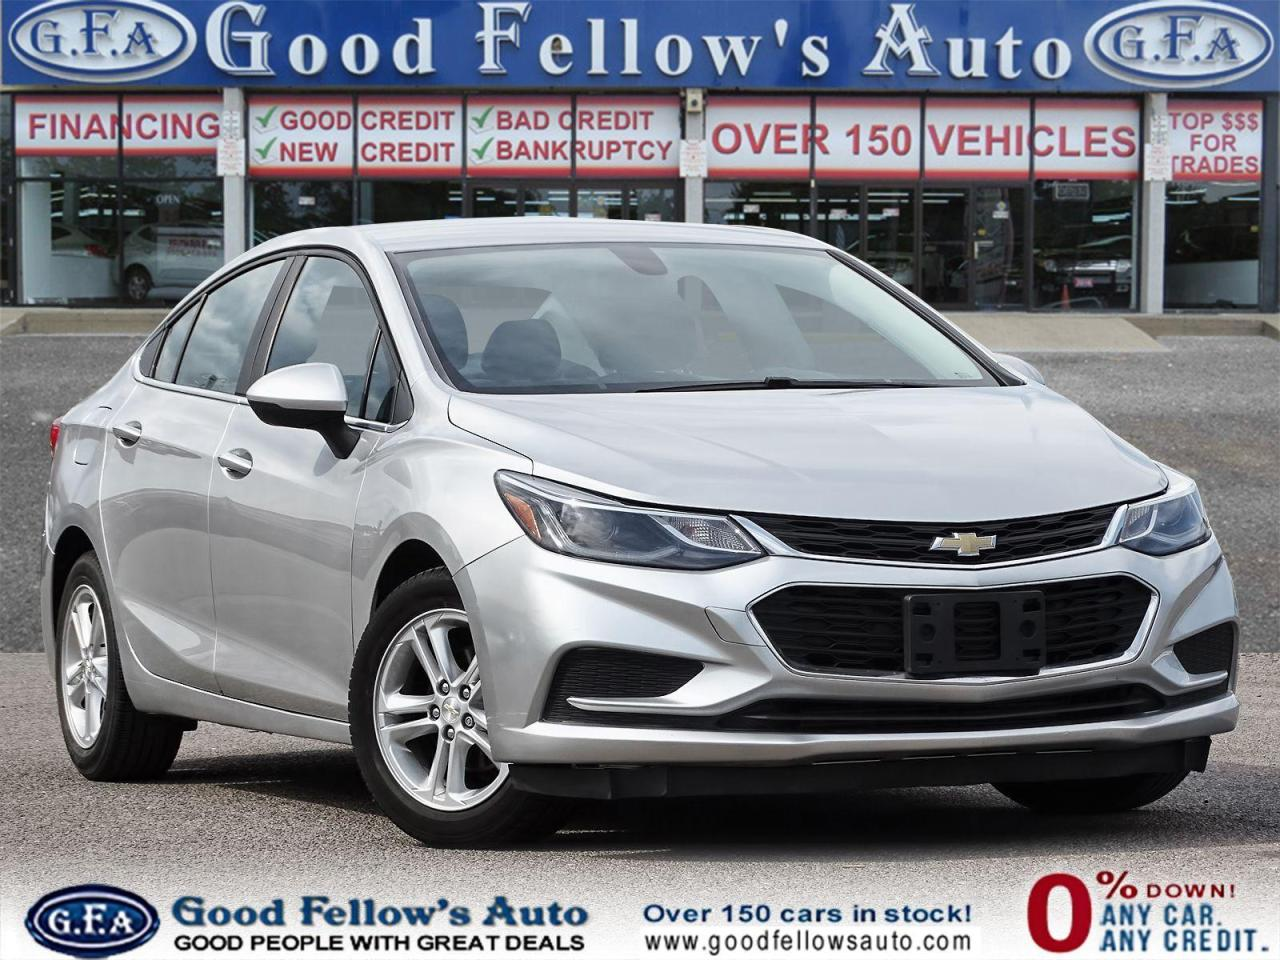 used 2016 Chevrolet Cruze car, priced at $8,999